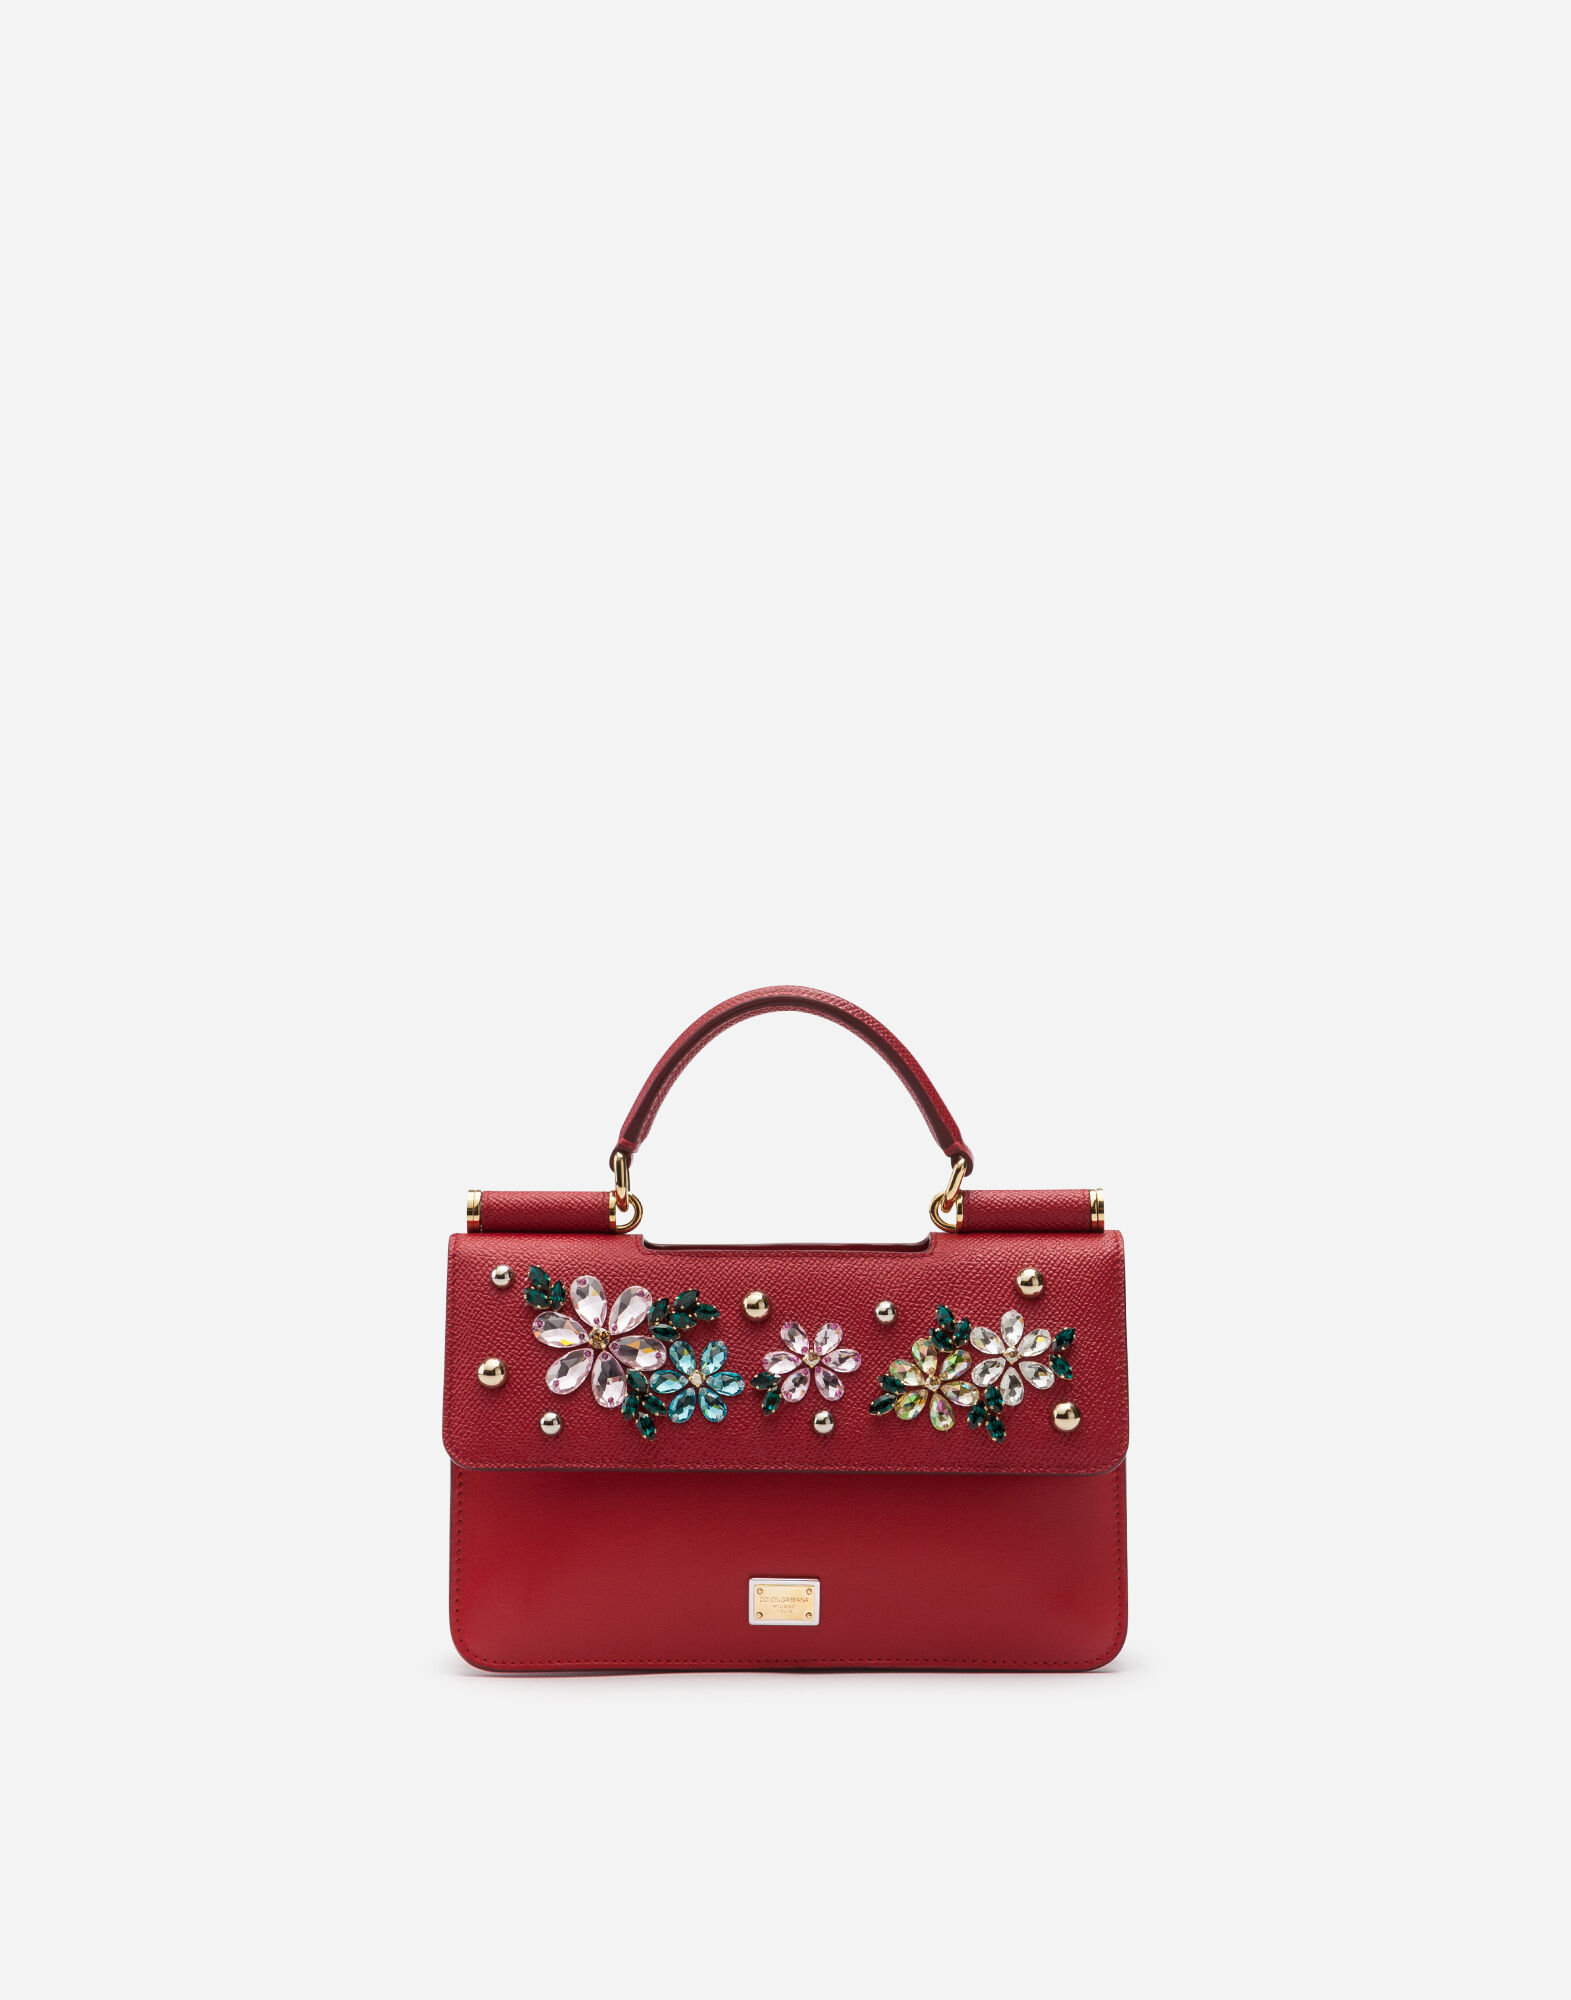 Sicily Mini Bag In Dauphine Calfskin With Embroidery in Red